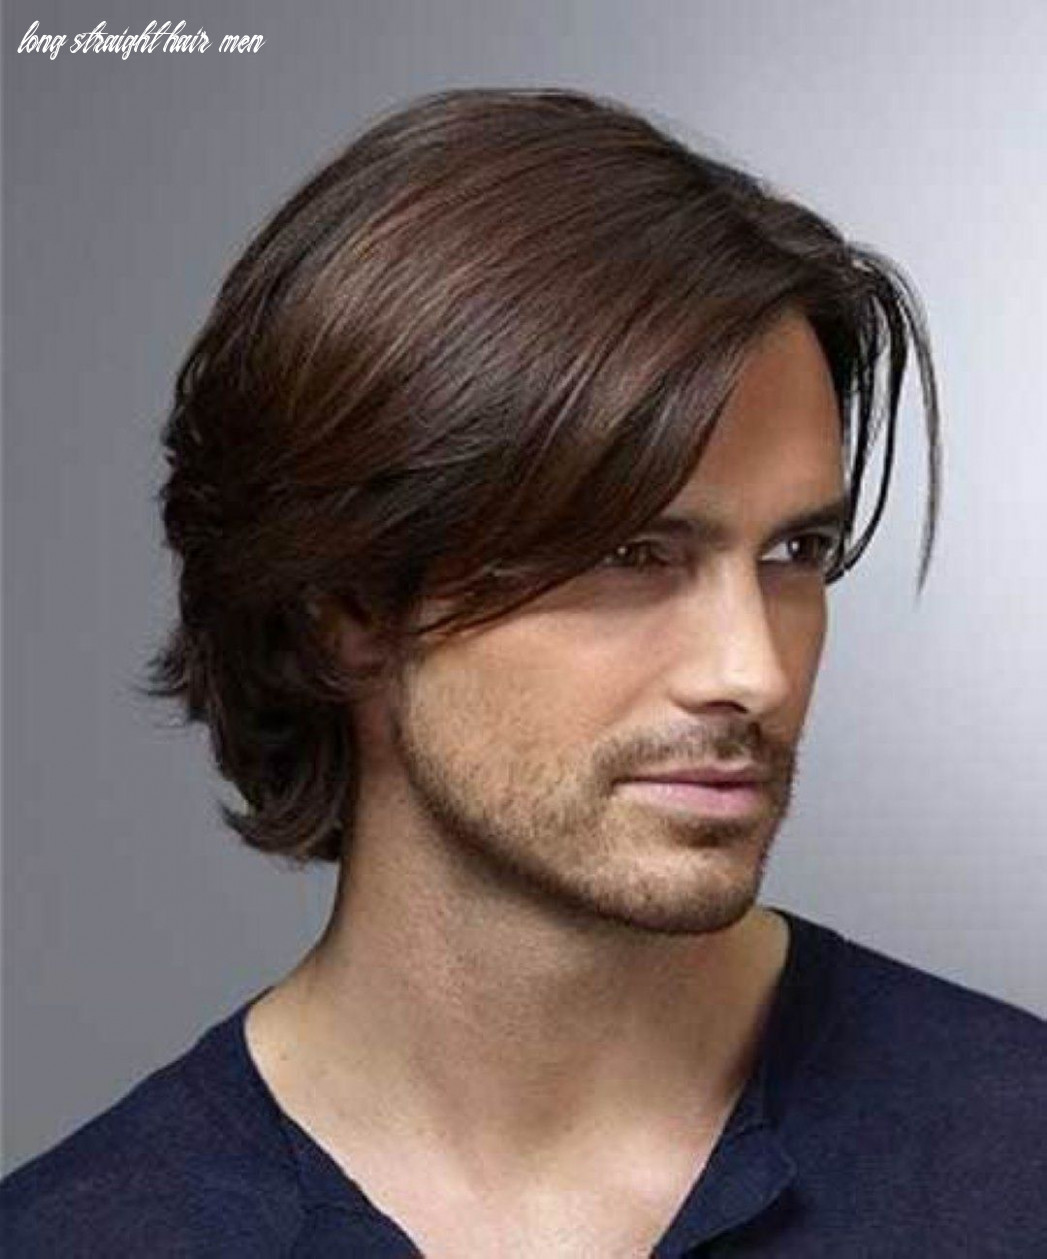 Pin on male body reference long straight hair men